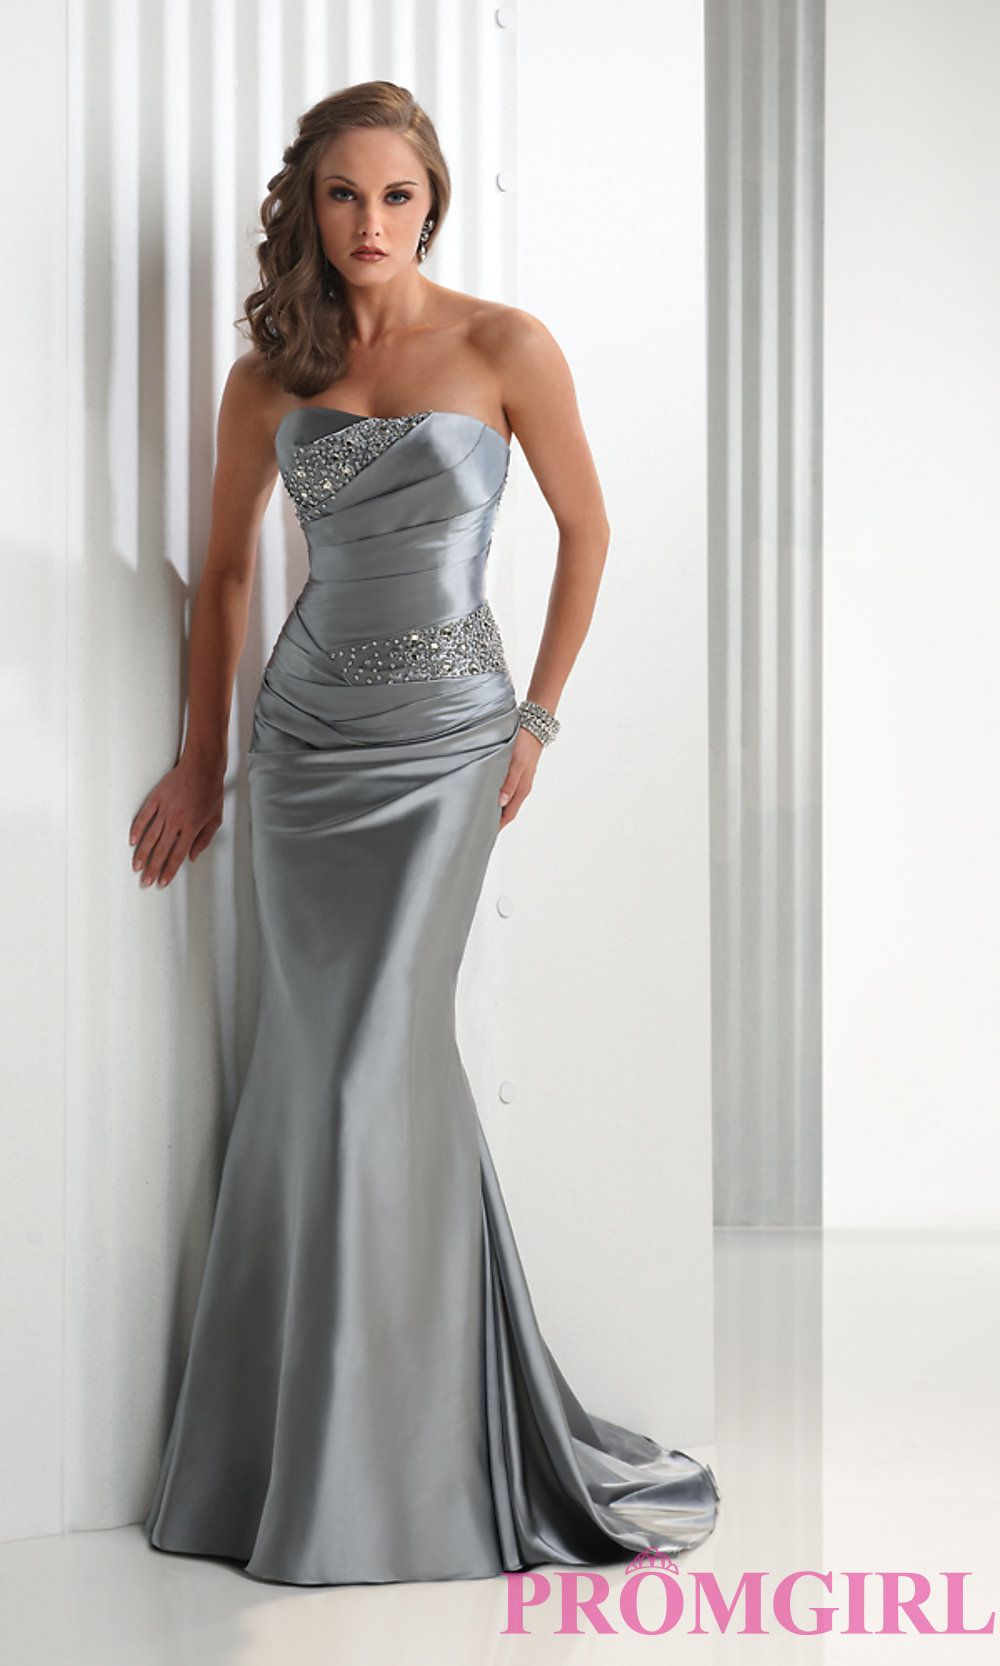 White evening gowns dress style flp vfrontview fashion